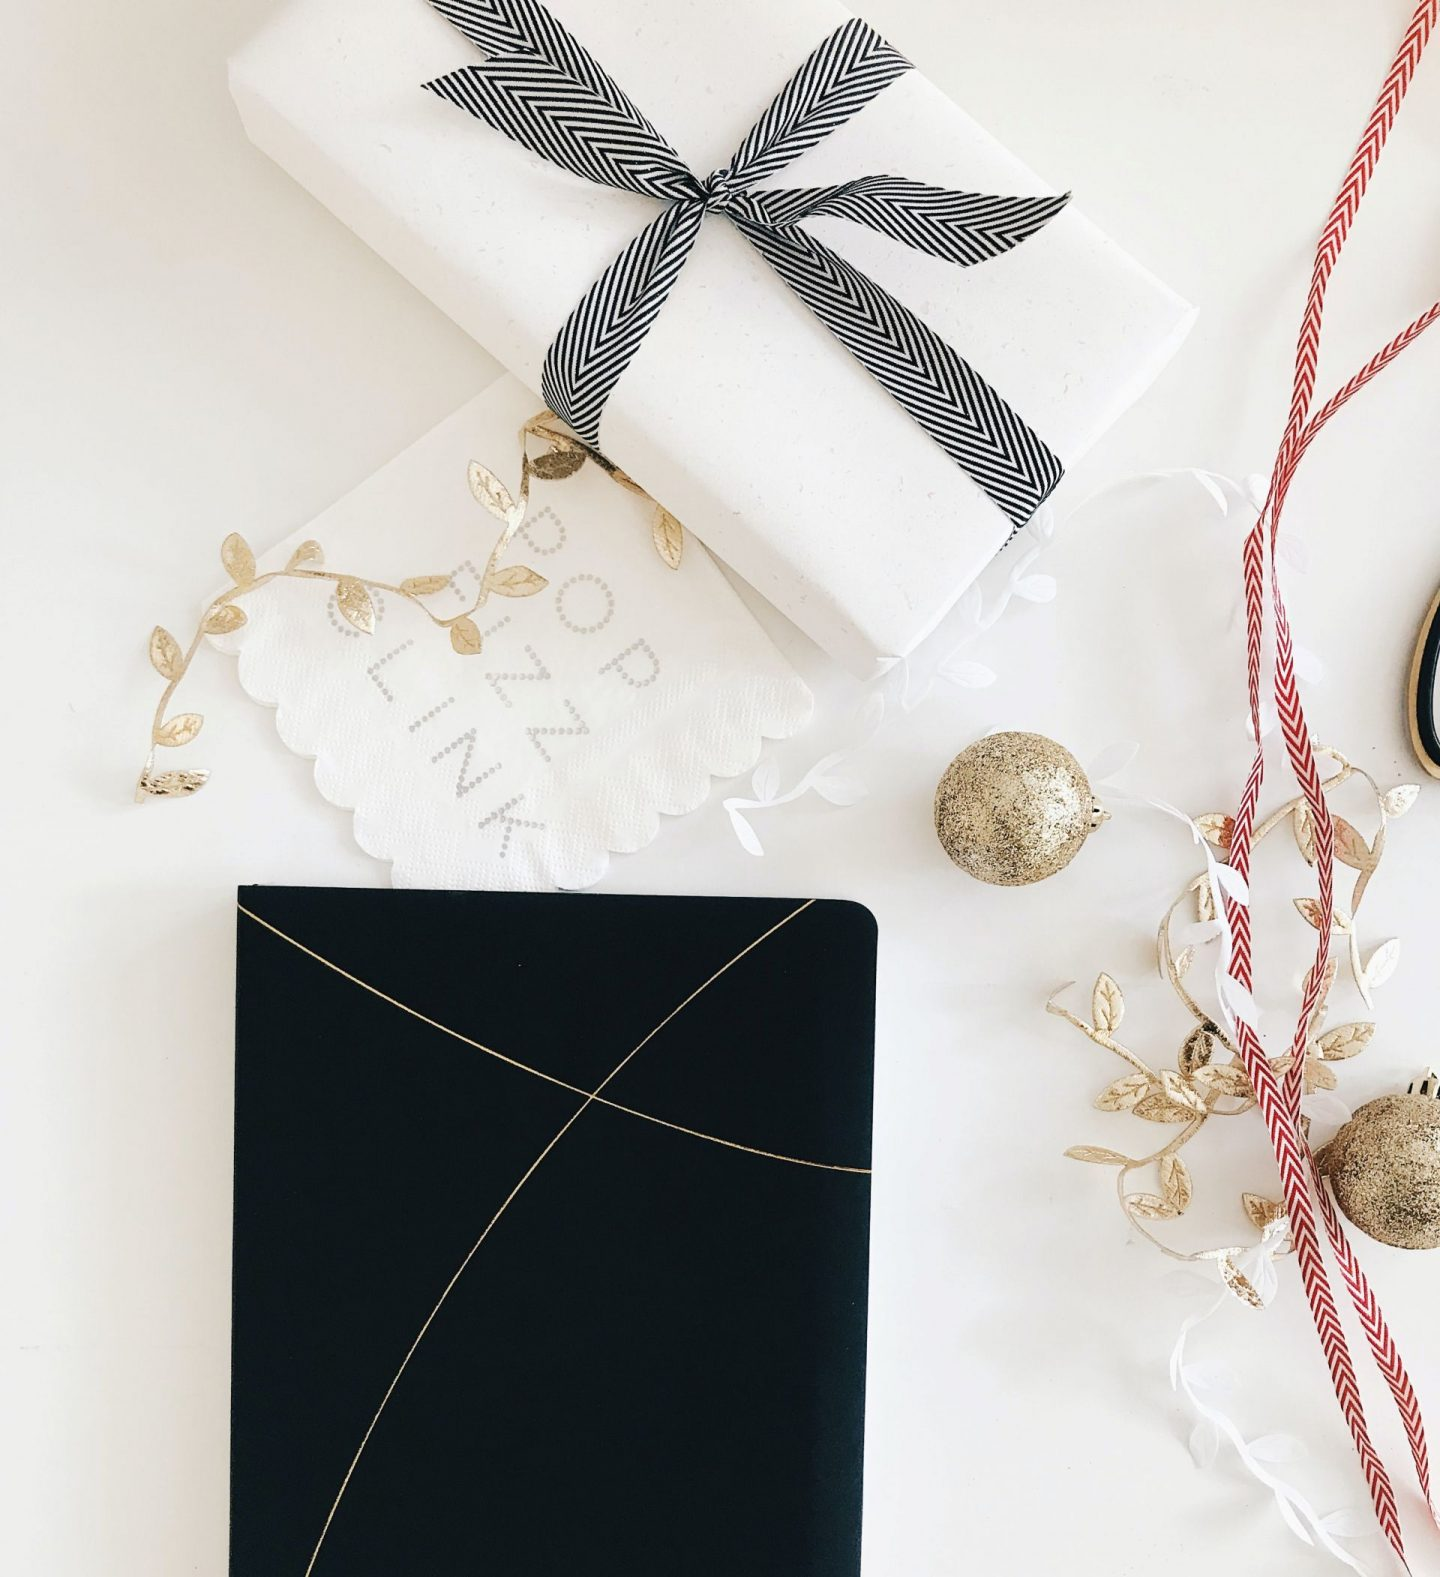 The Holidays Arrive Early at The Accessories Council